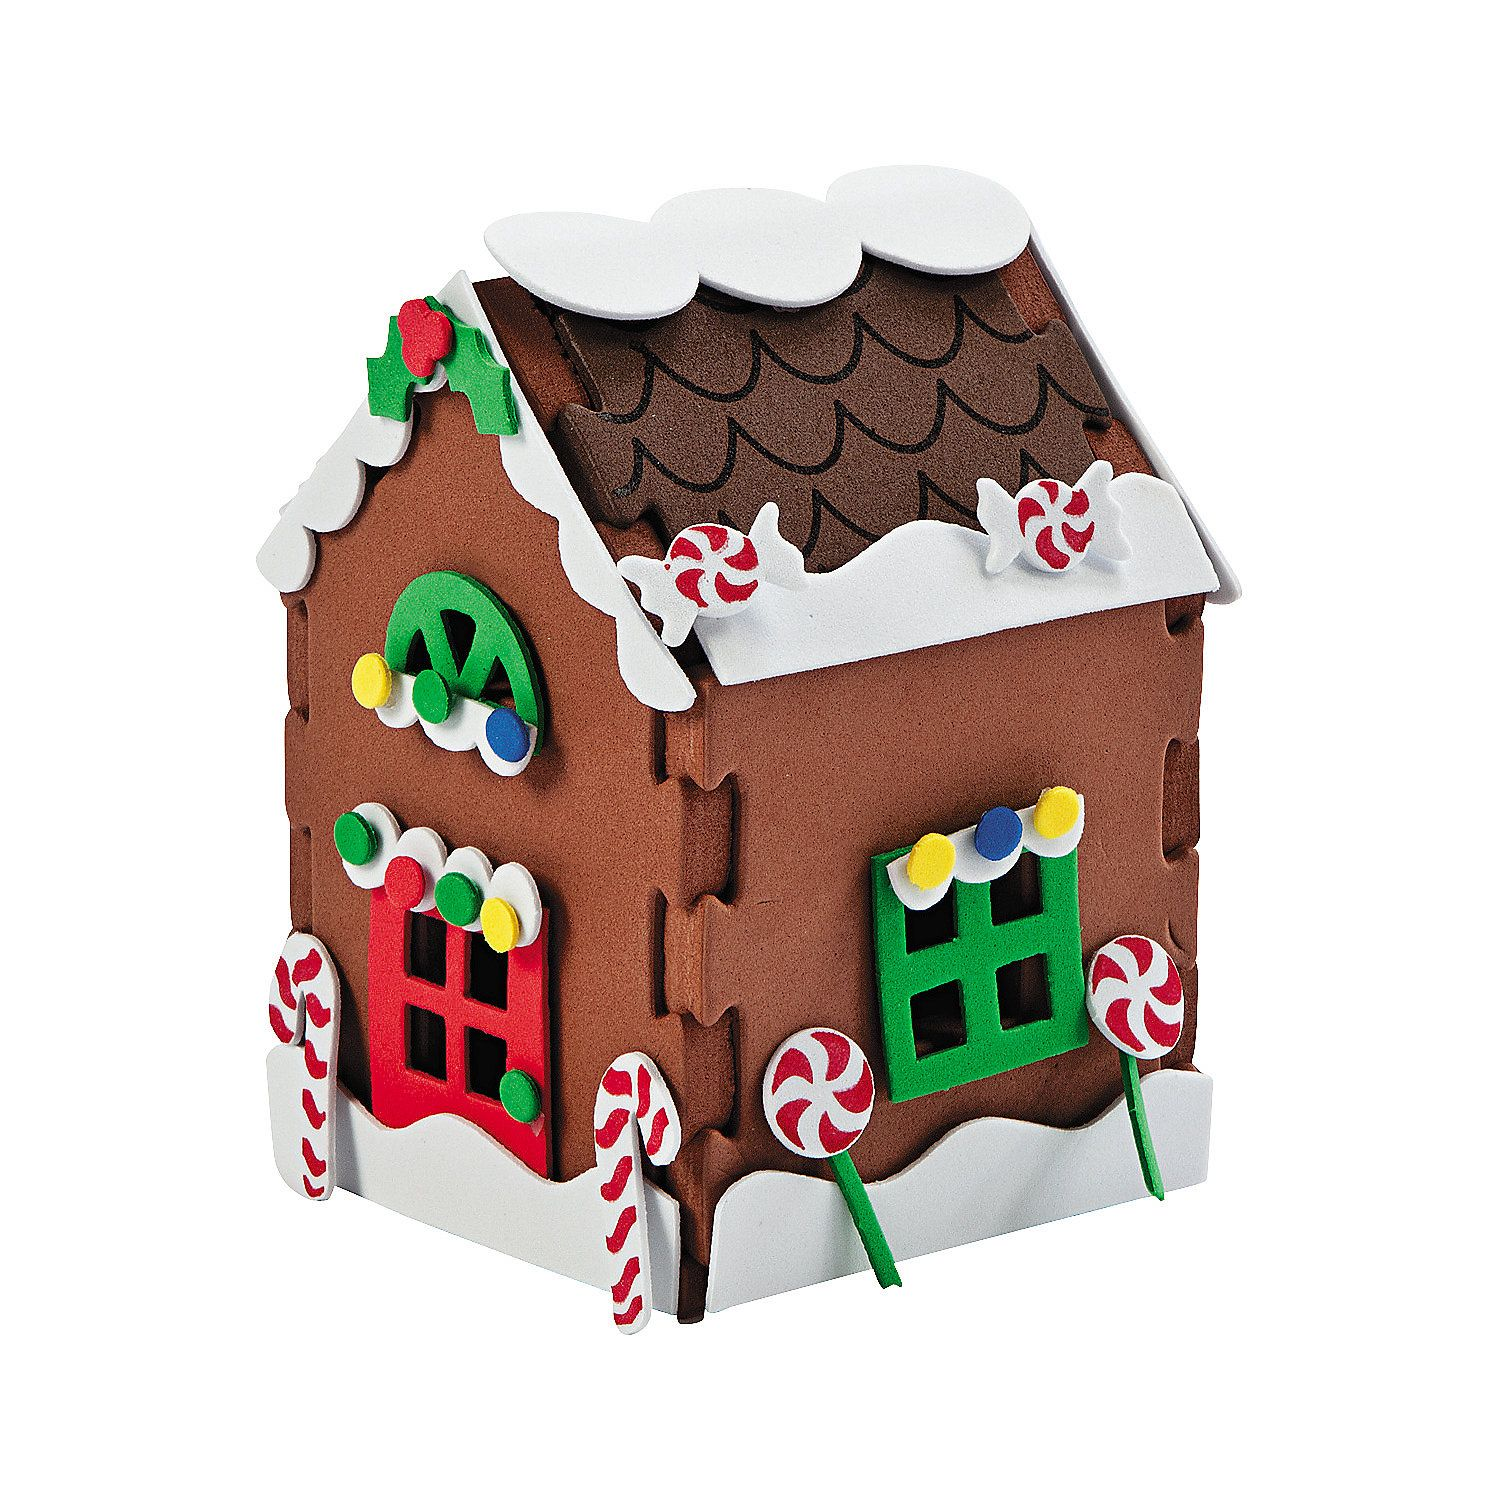 Top 10 Christmas Craft Construct Your Own 3d Gingerbread